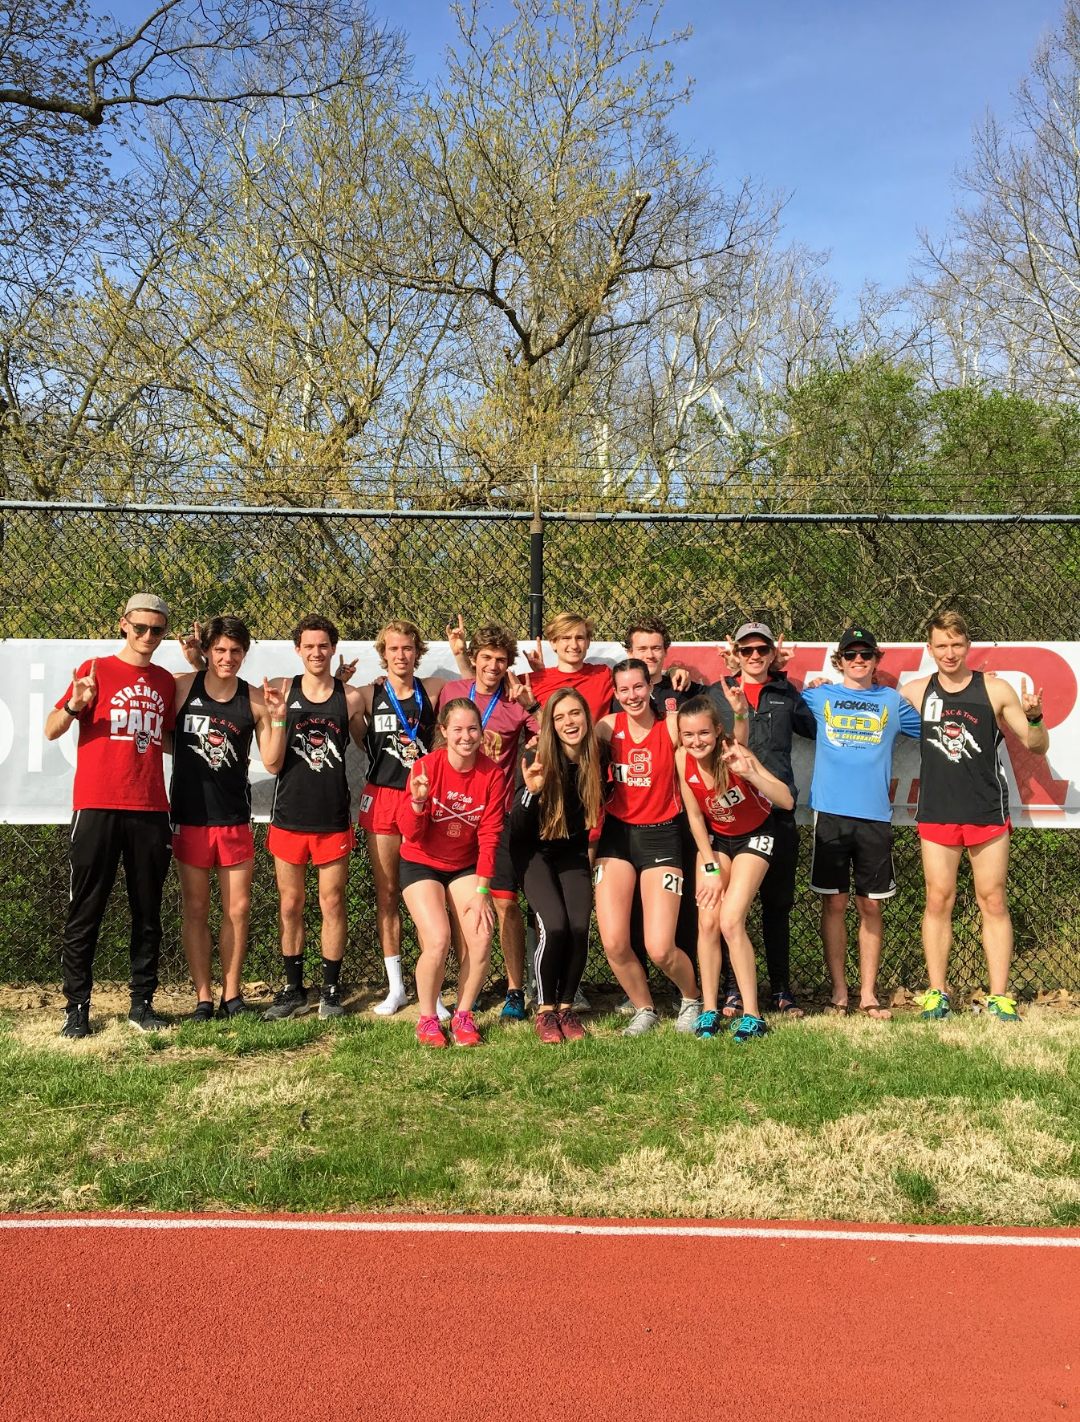 Men's and women's participants after the 2019 NIRCA National Track Championship meet in Oxford, OH